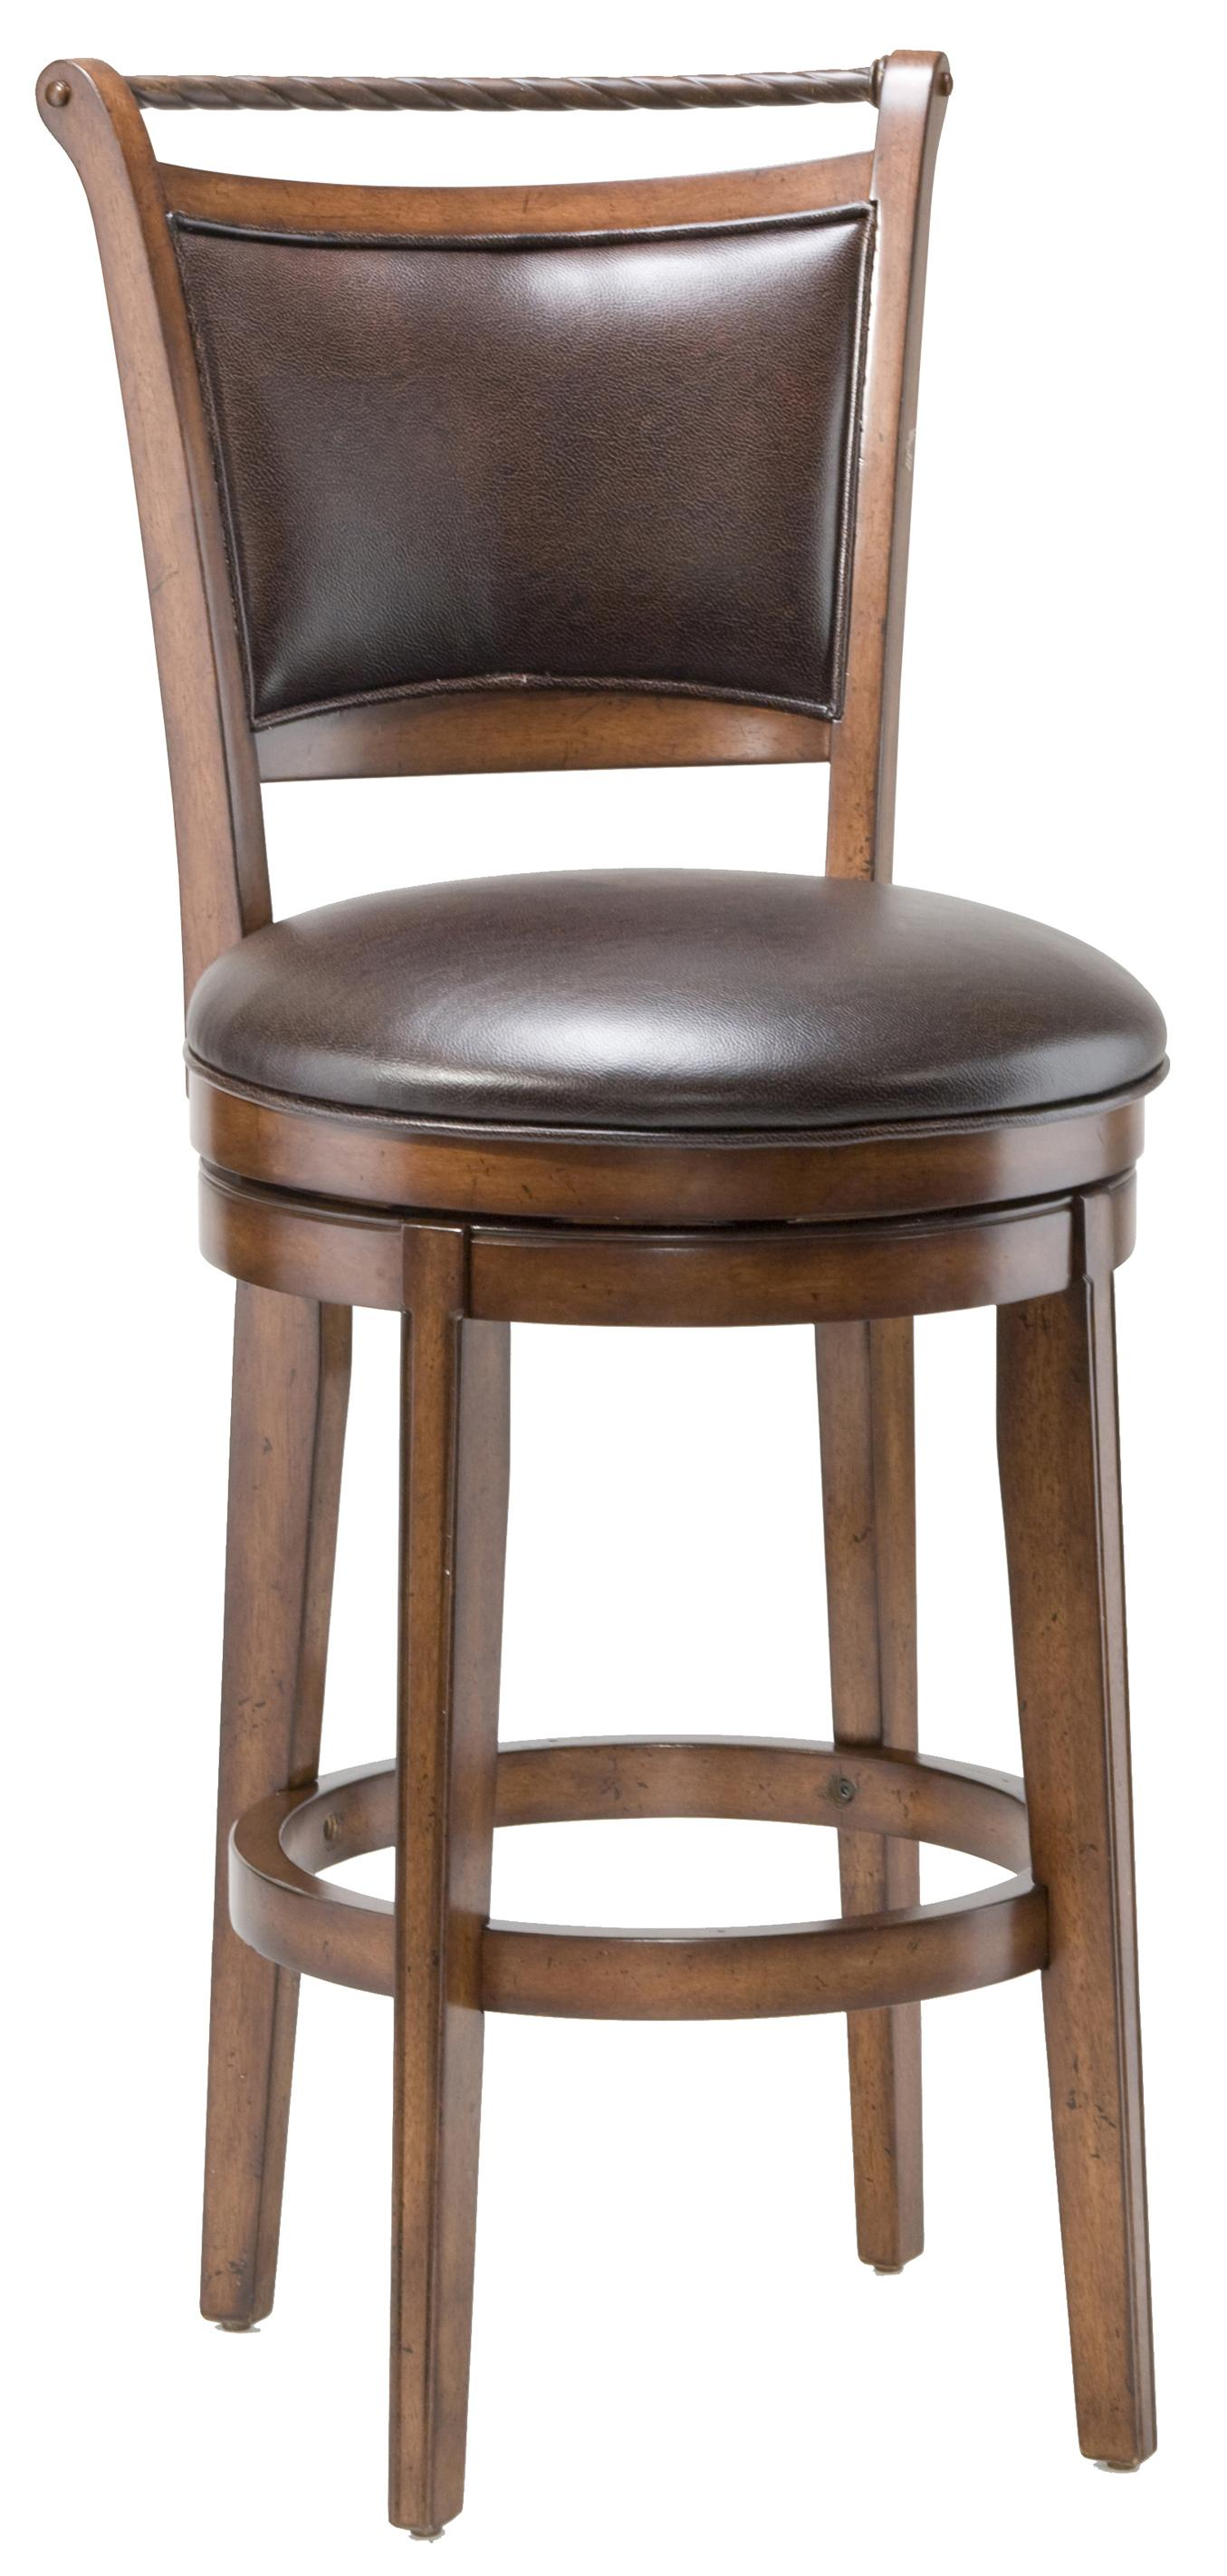 26 Quot Counter Height Calais Swivel Stool By Hillsdale Wolf